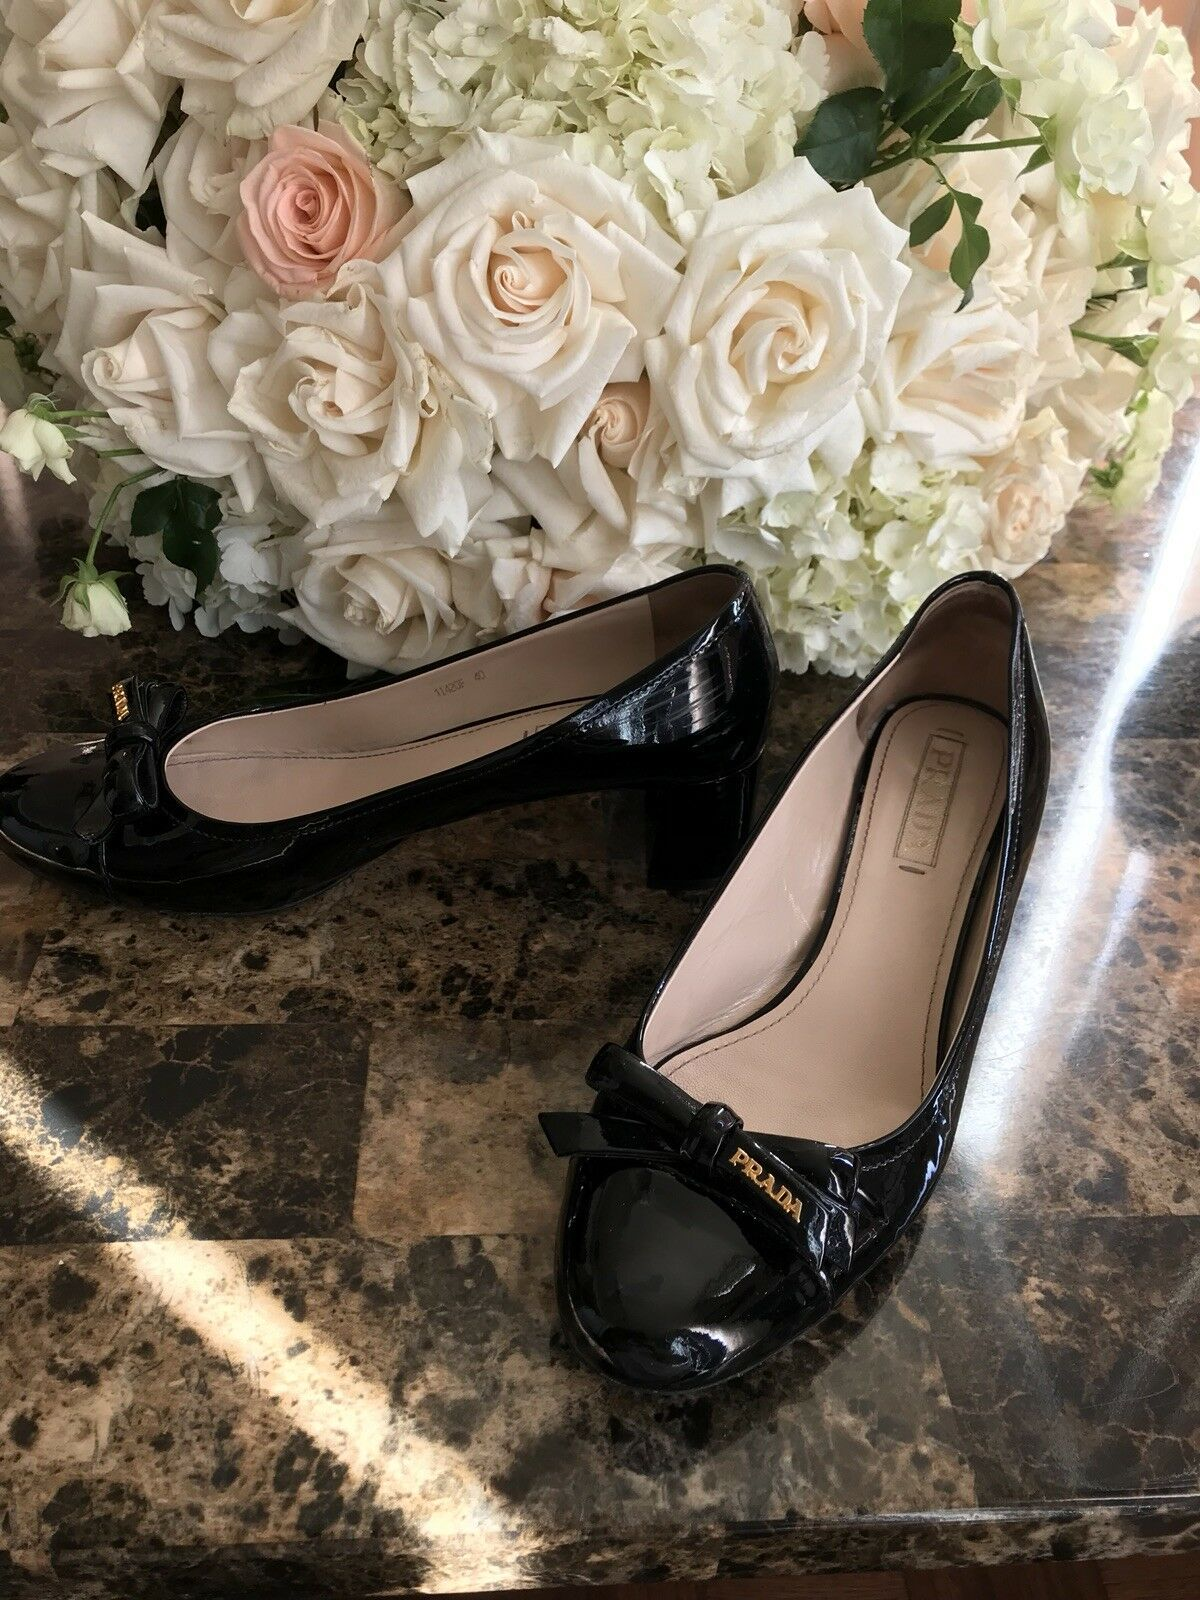 PRADA chaussures Taille Taille Taille 40 (10) 06212a